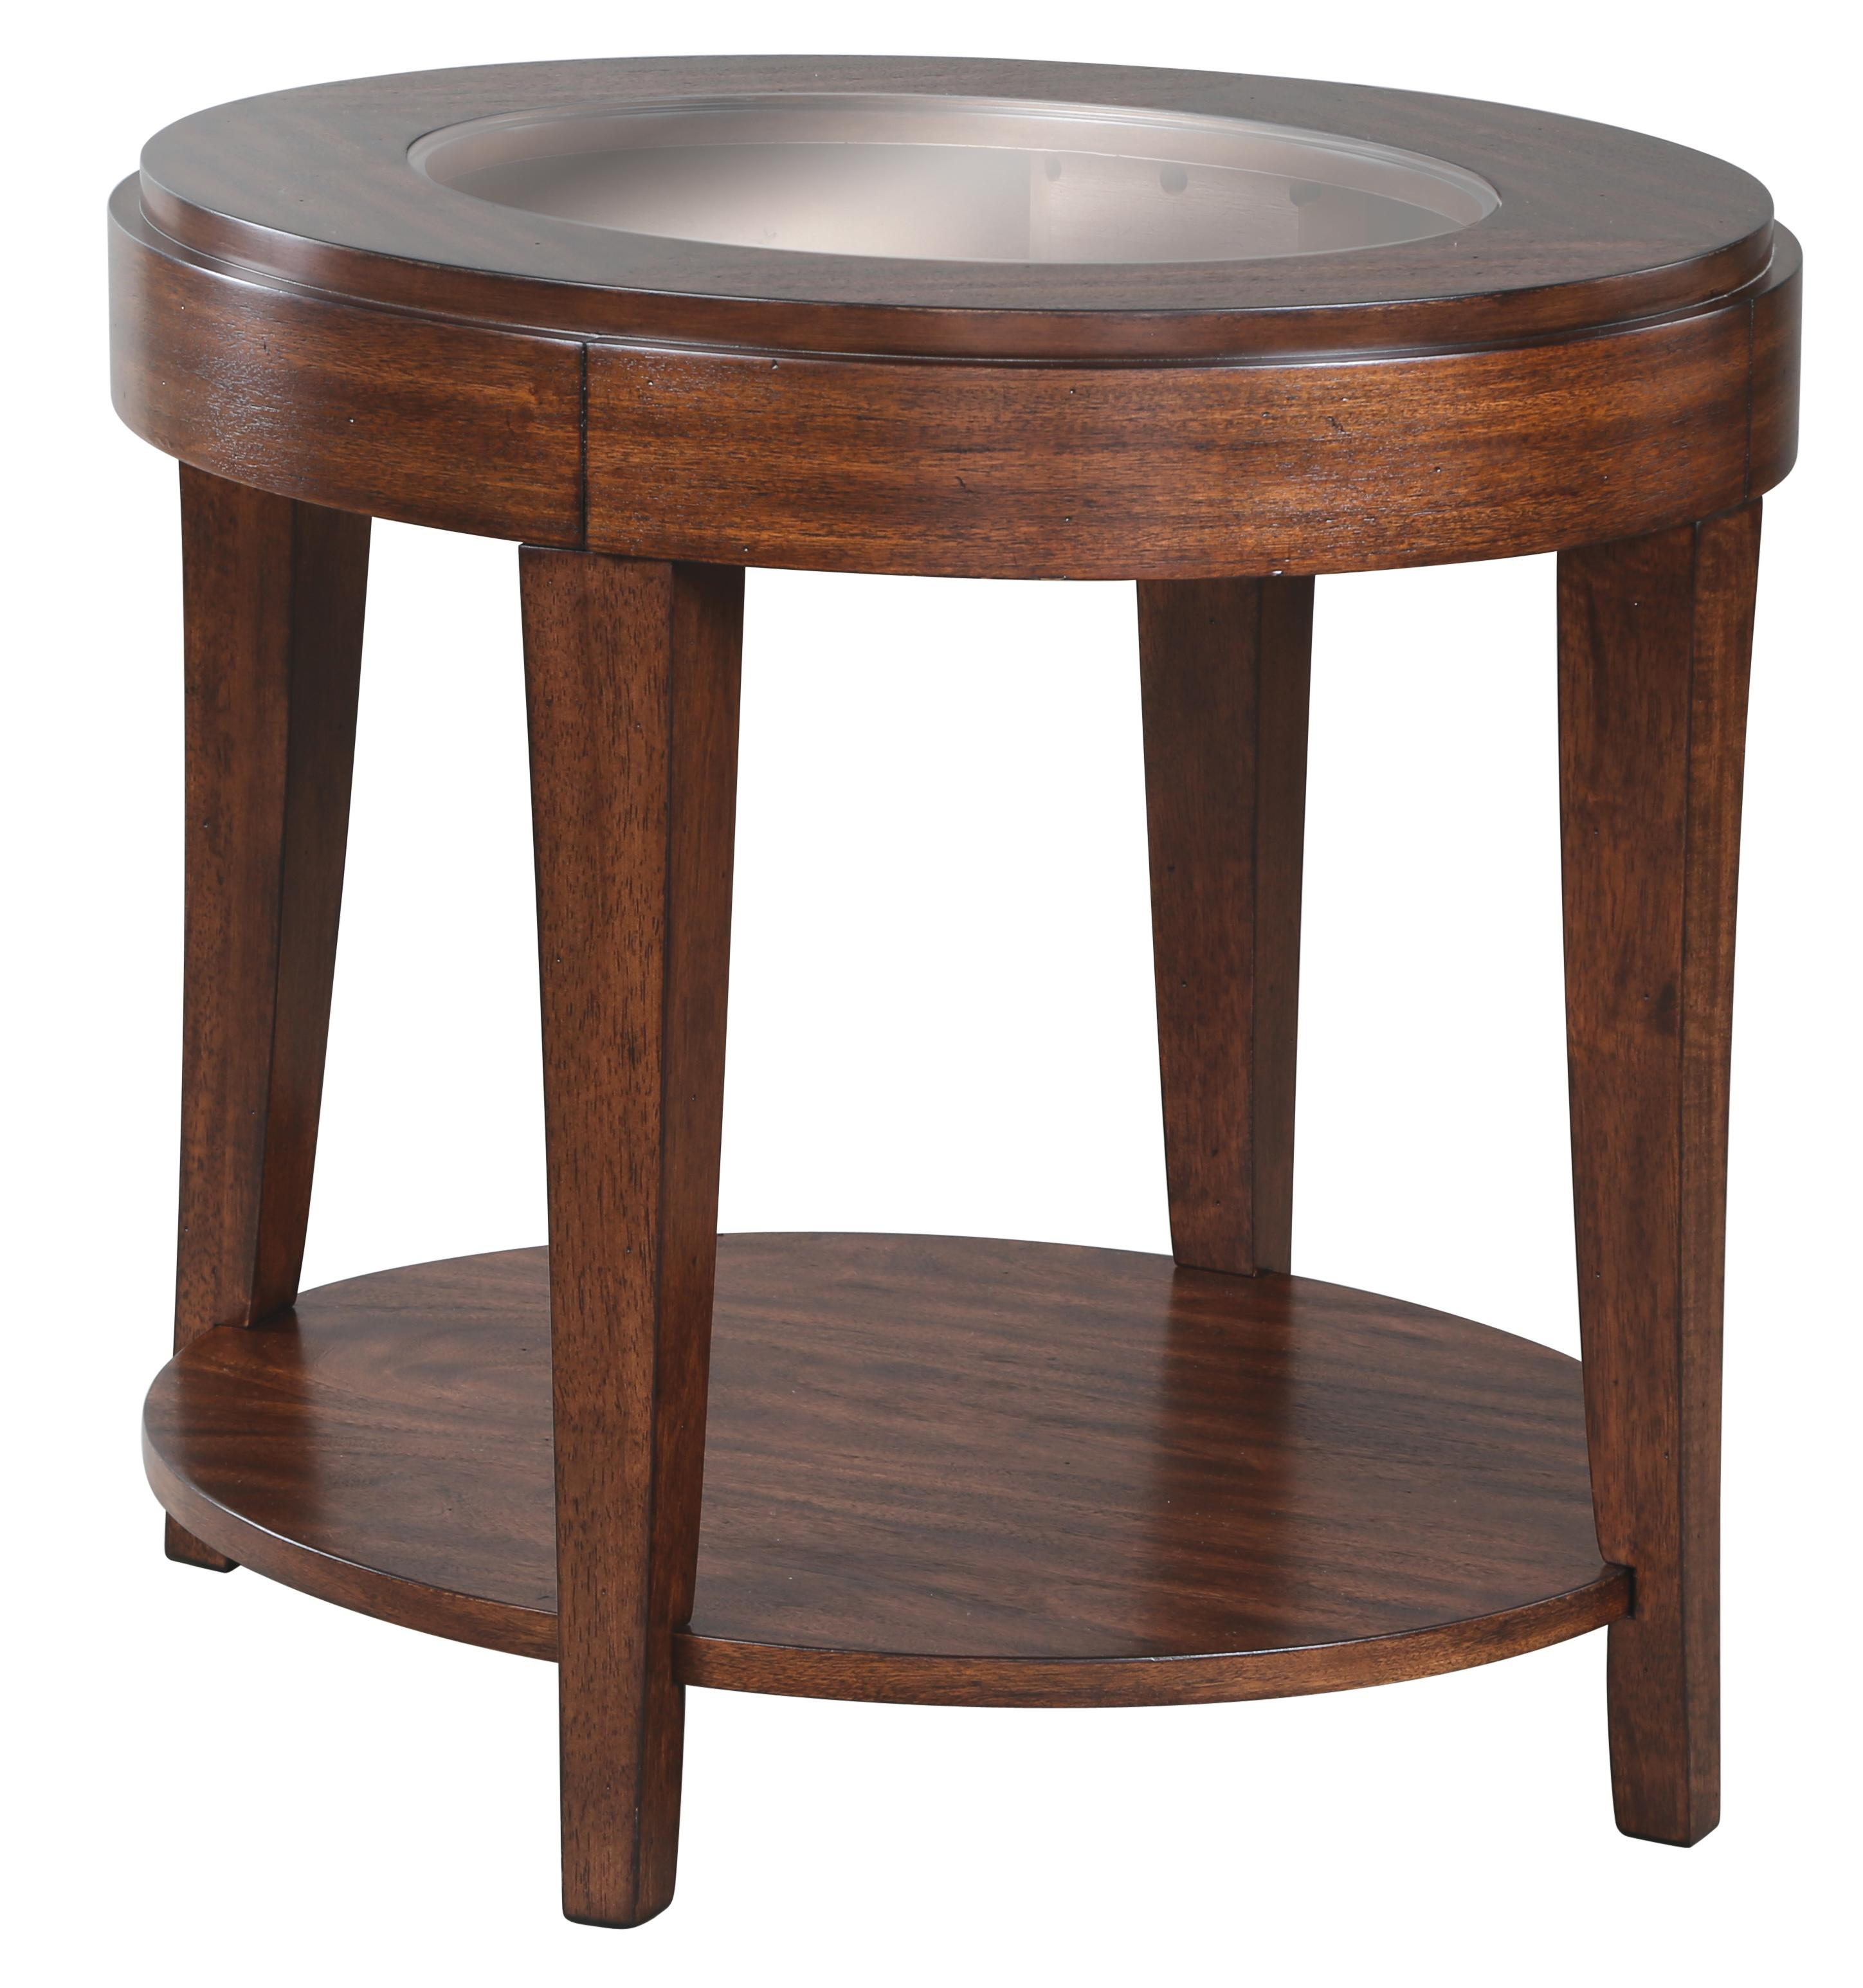 Belfort Select Keaton Oval End Table - Item Number: T2536-07